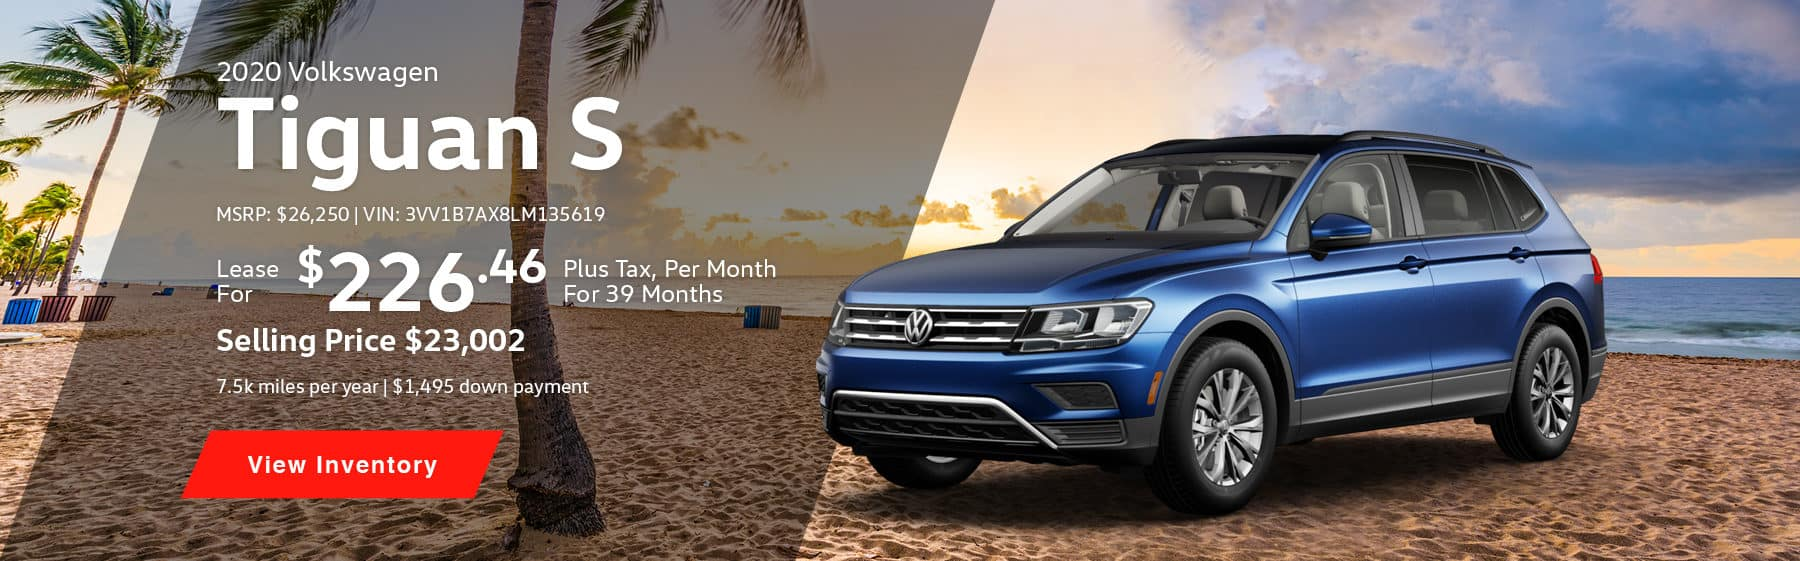 Lease the 2020 Tiguan S for $226.46 per month, plus tax for 39 months.